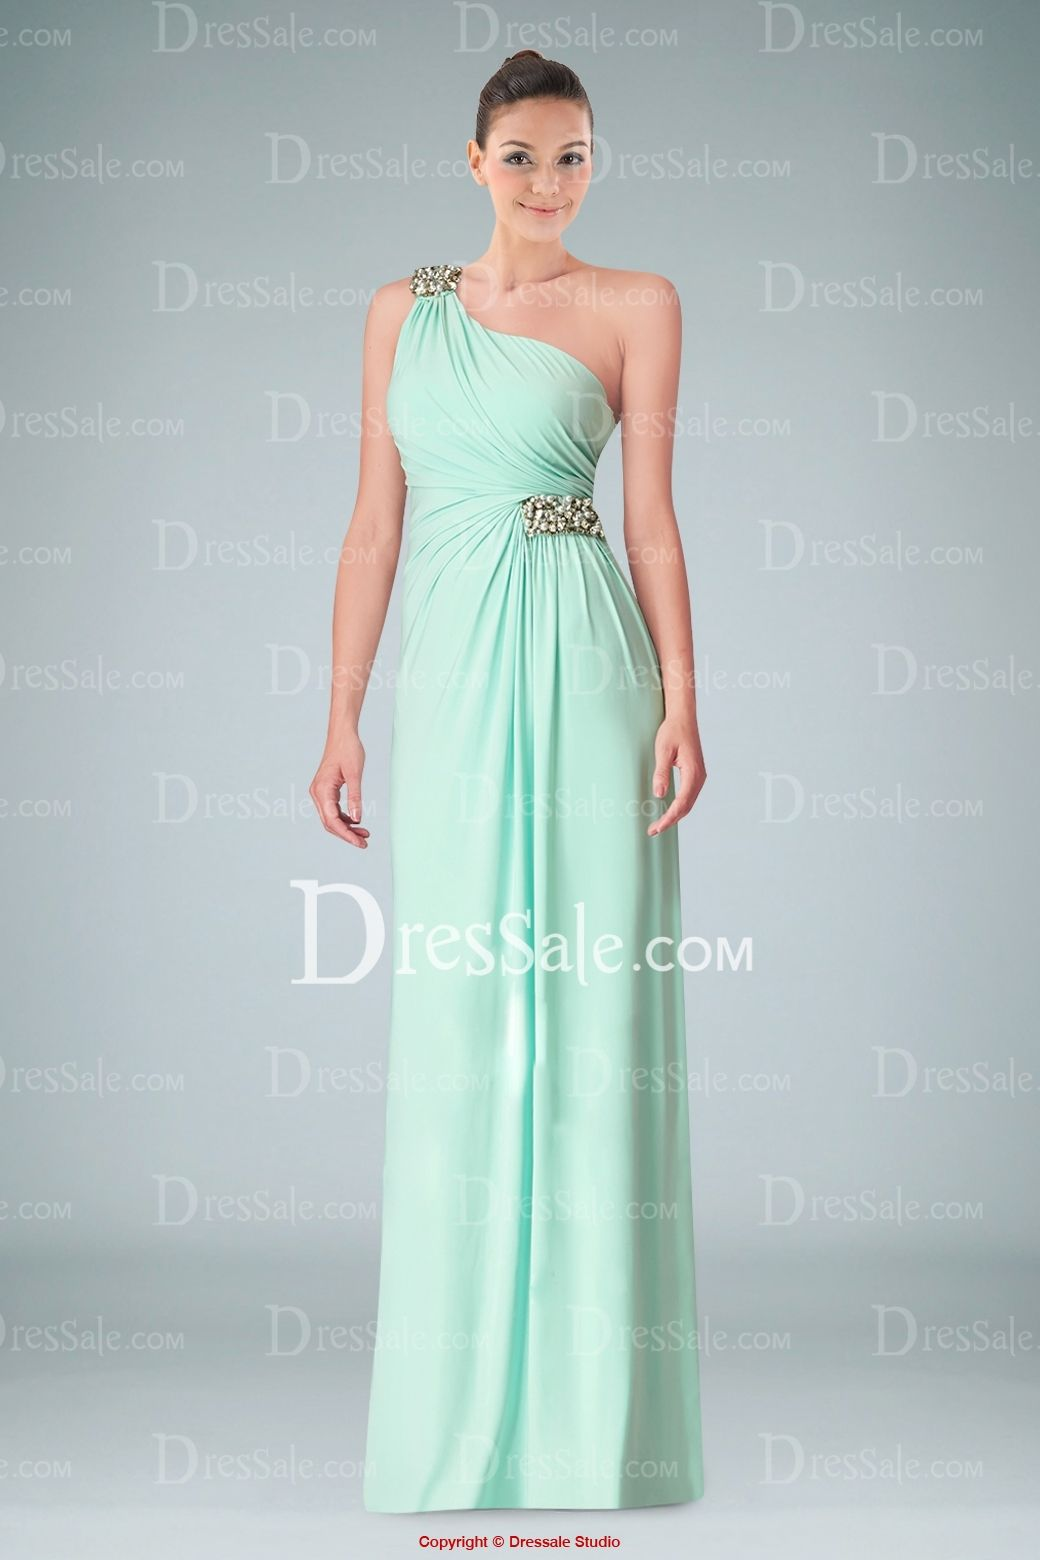 Vogue oneshoulder strap column evening dress with beaded accents